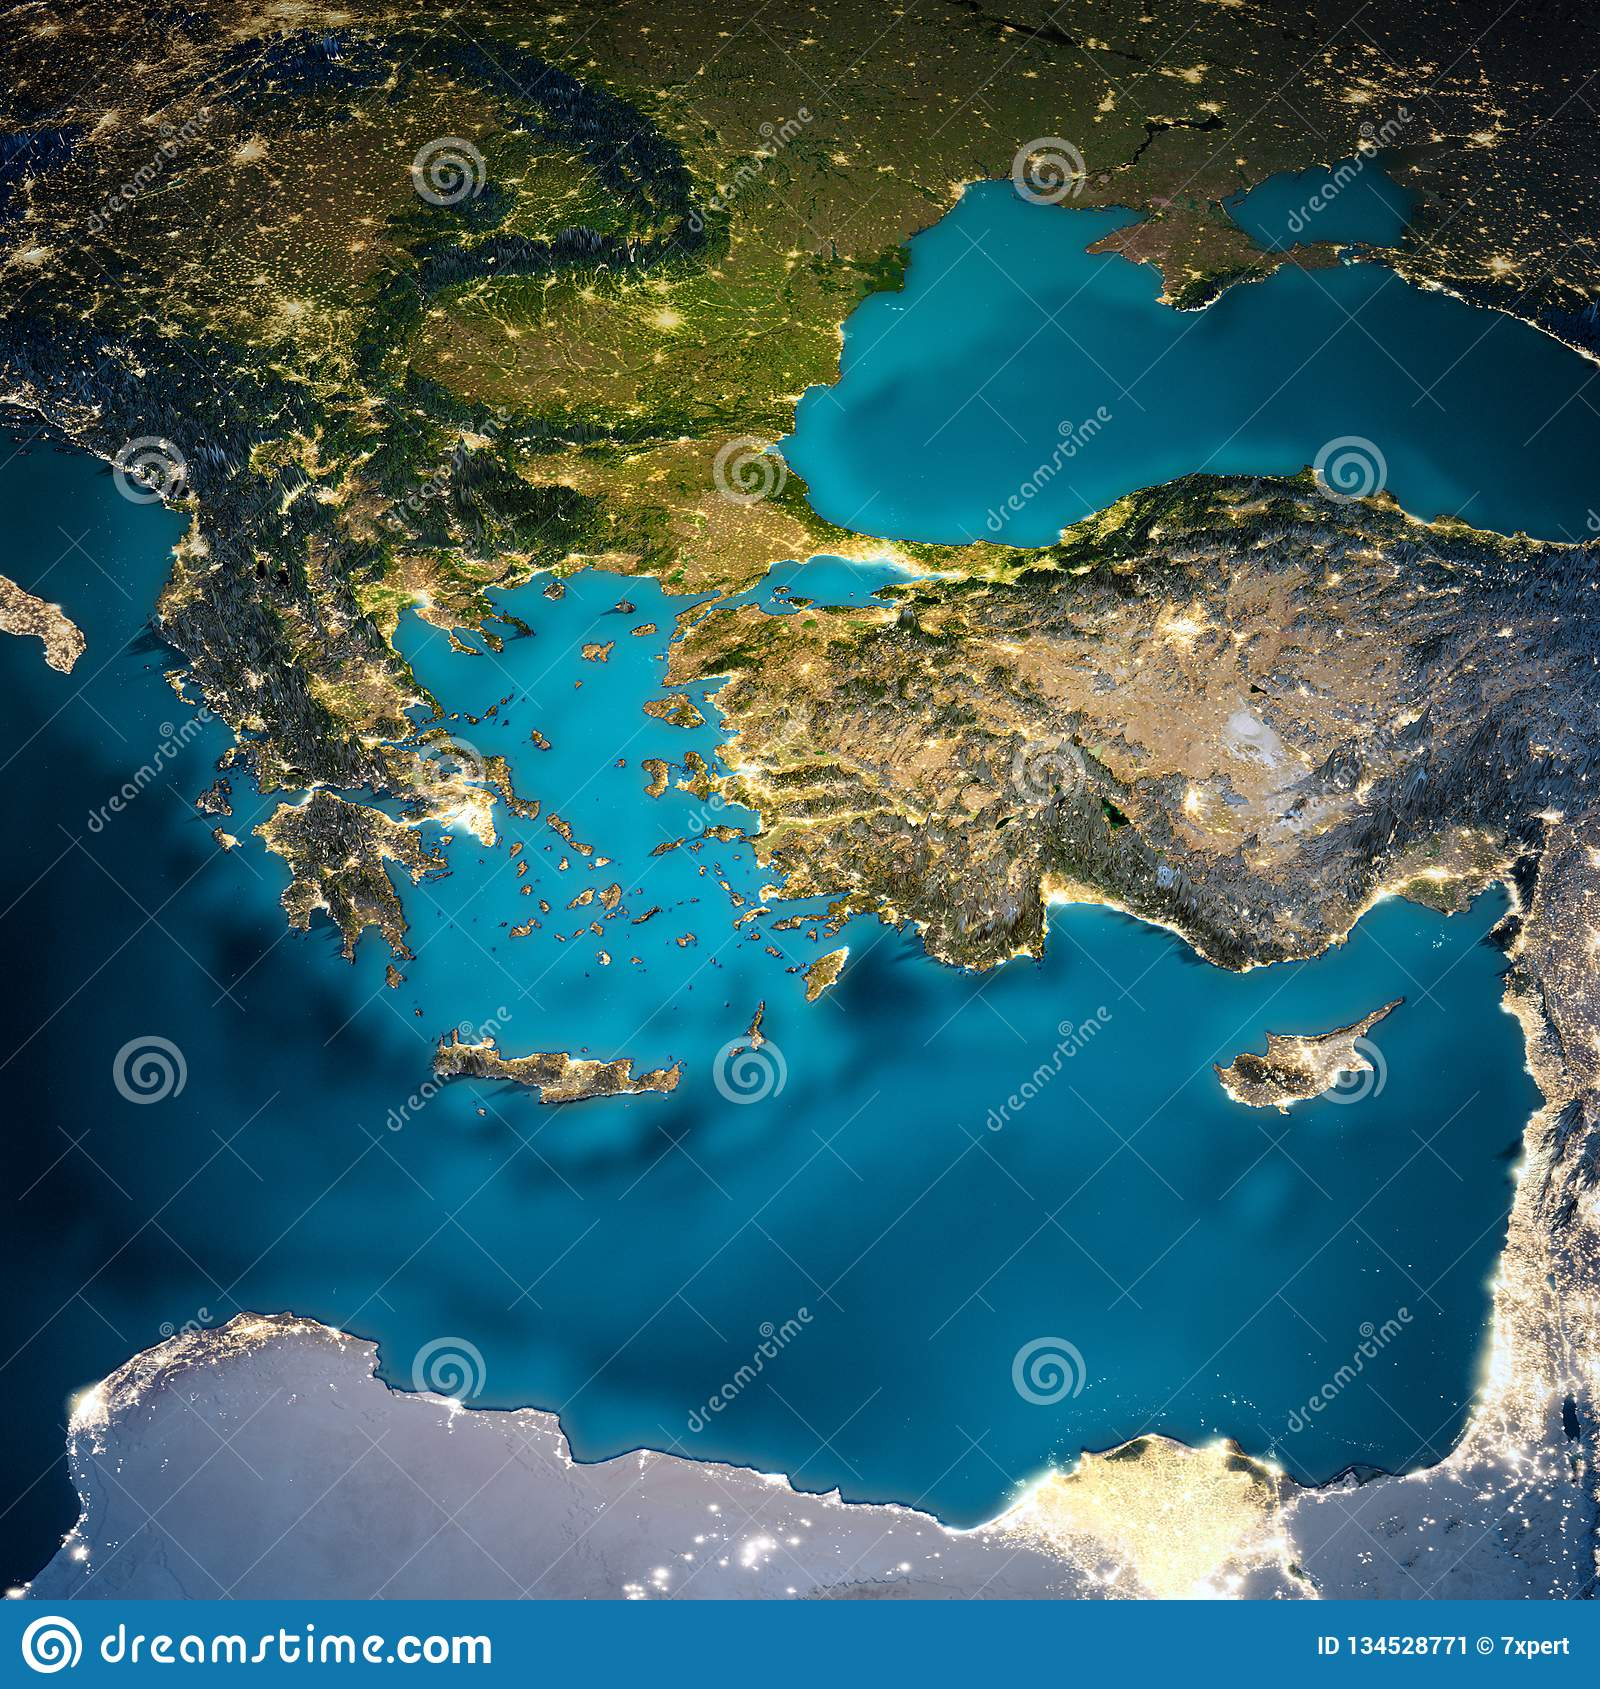 Turkey And Greece Map.Turkey And Greece Map Stock Image Image Of Earth Topography